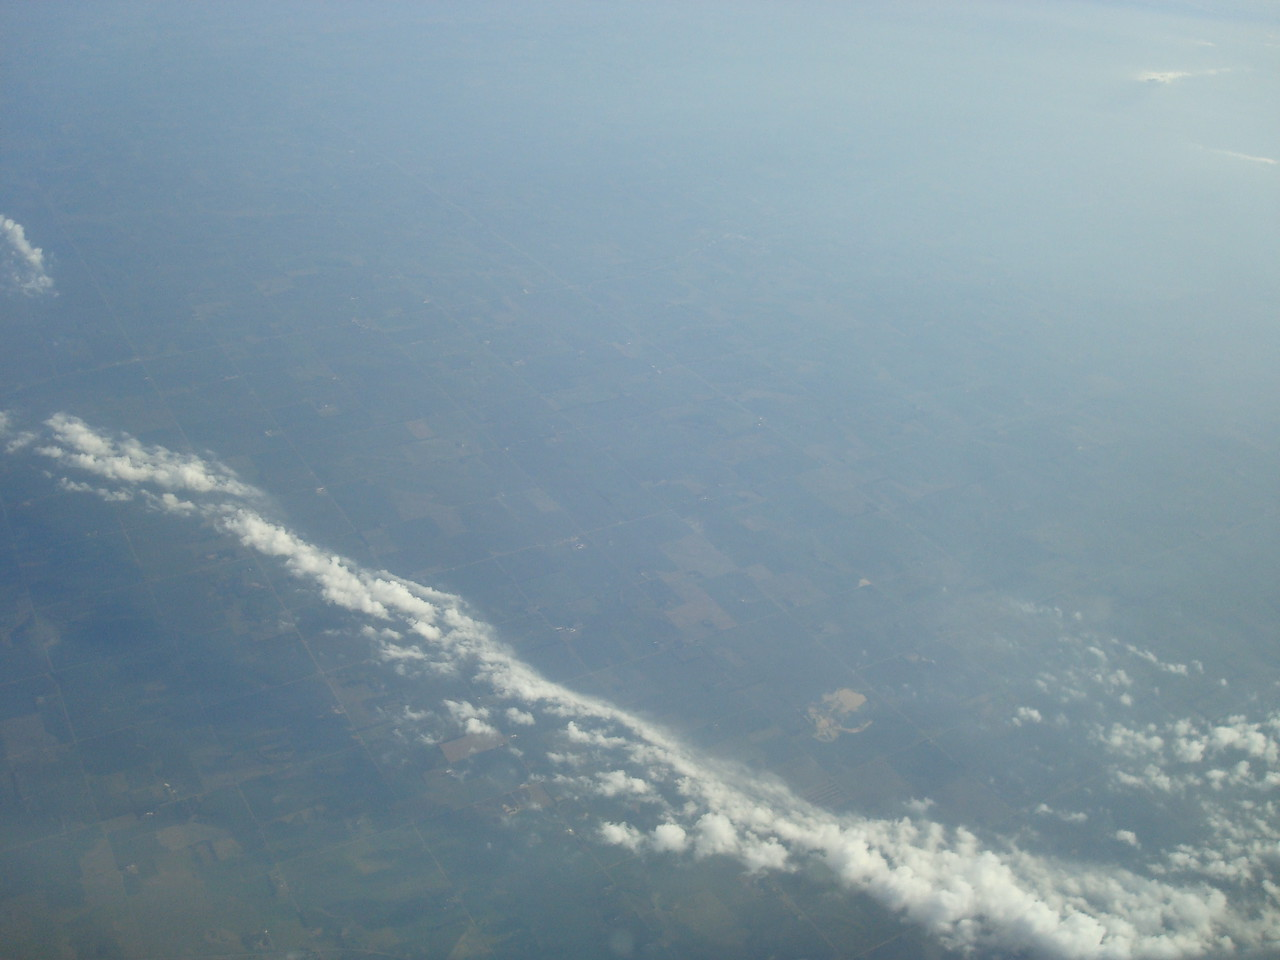 Somewhere over Ohio or thereabouts. Possibly a neighboring state.